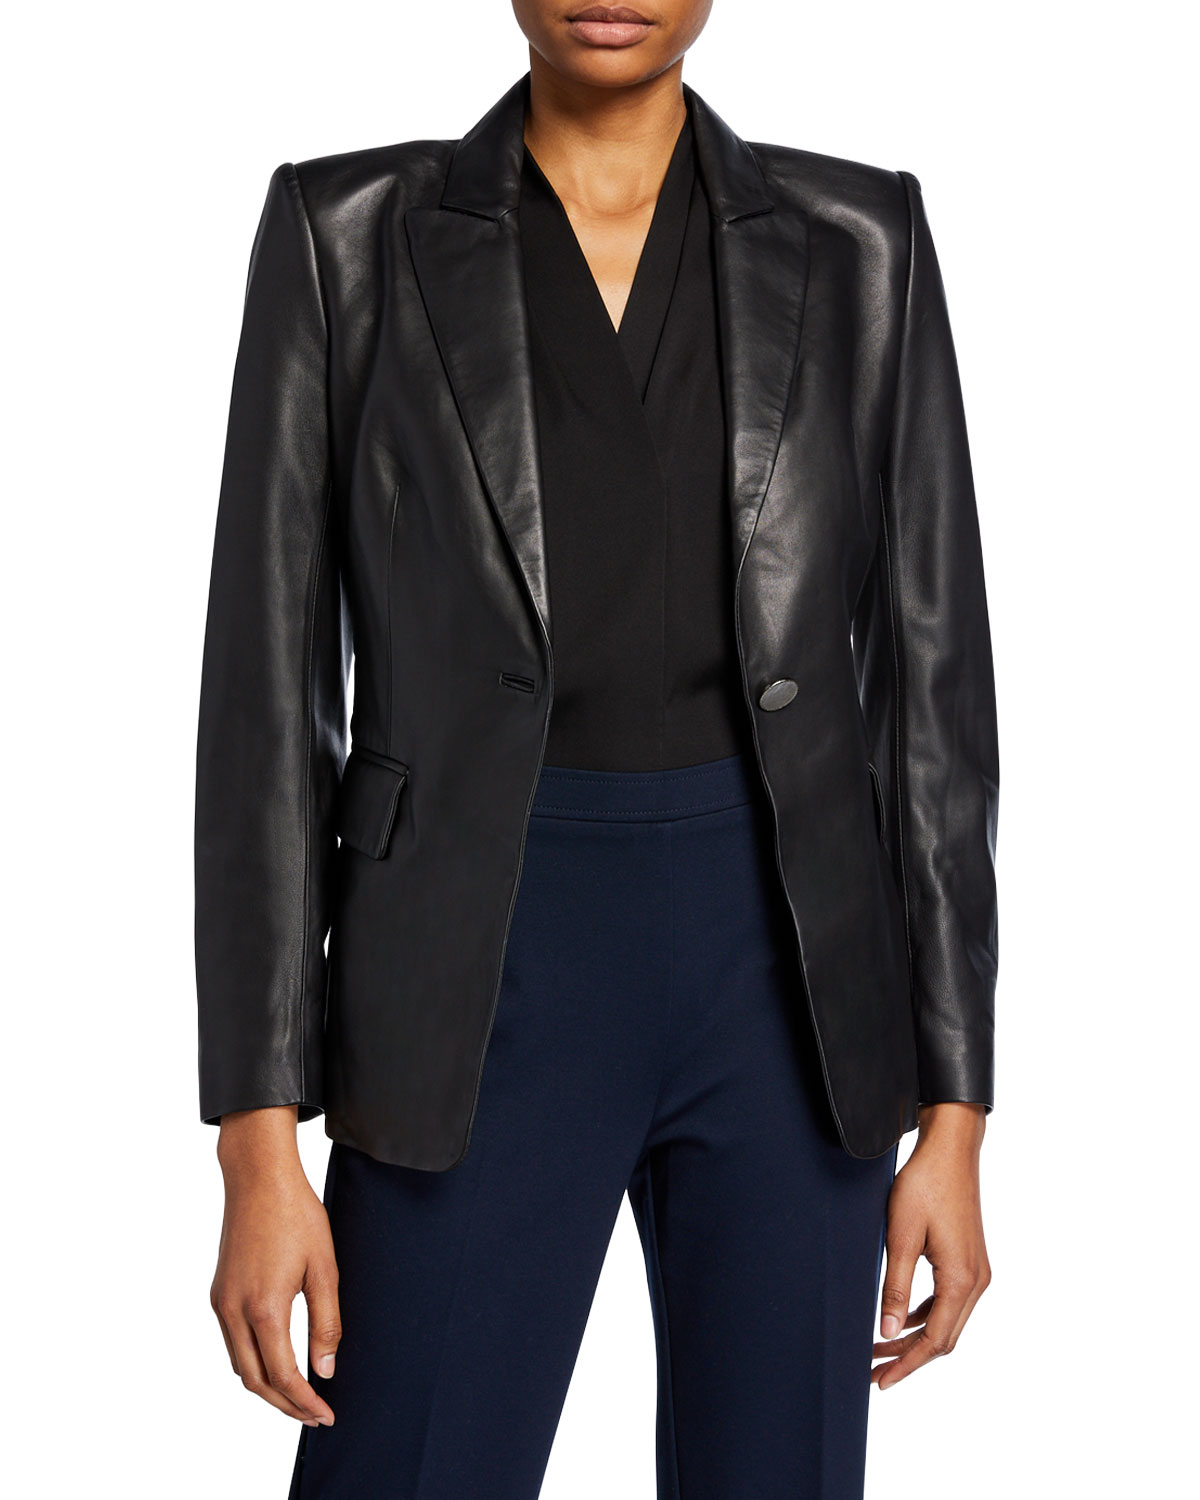 Kobi Halperin Jackets AVERY ONE-BUTTON LEATHER JACKET